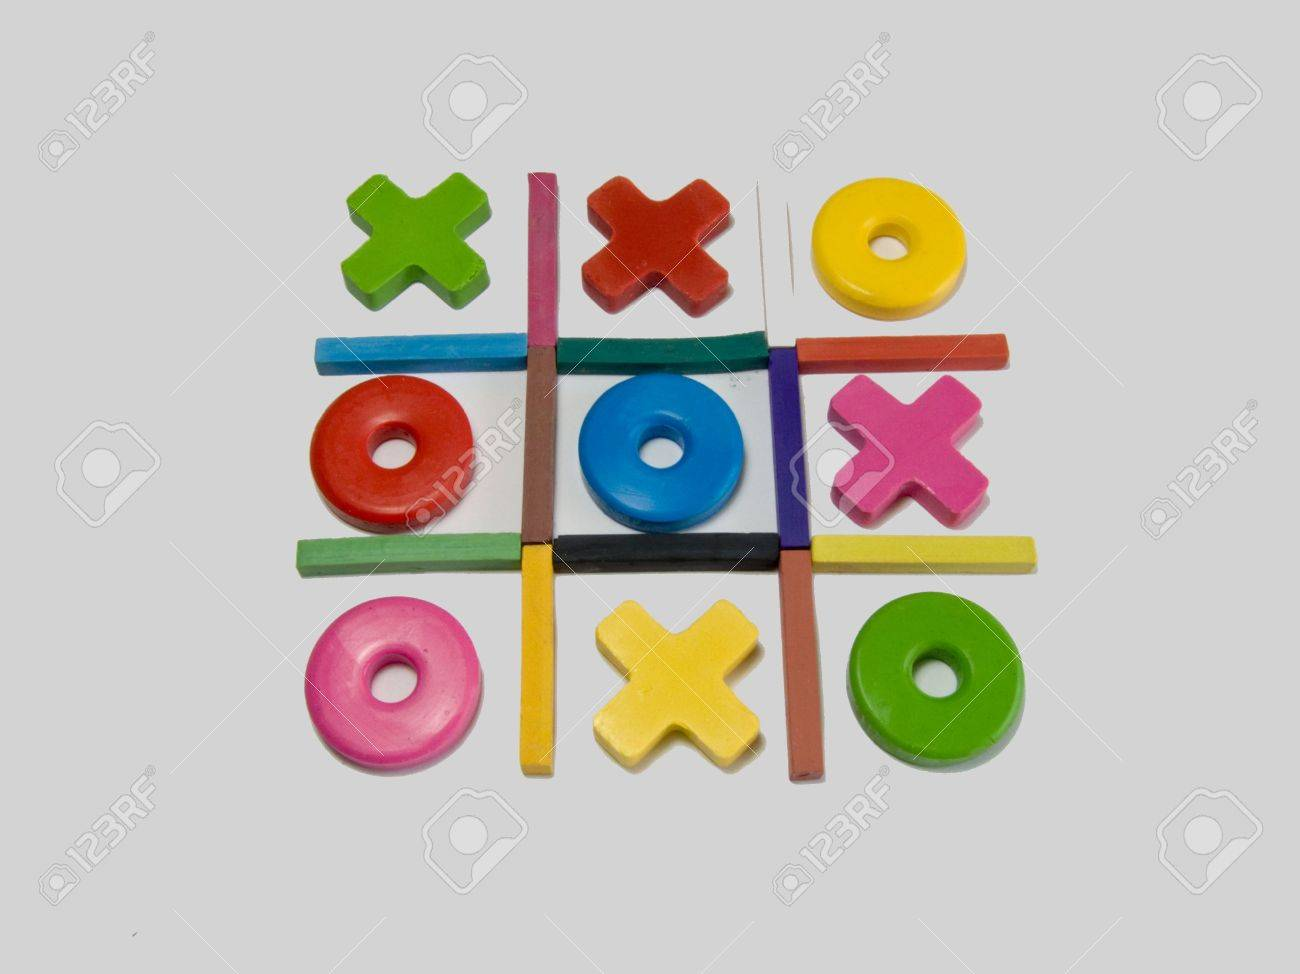 Naughts And Crosses A Childhood Game Stock Photo, Picture And ...